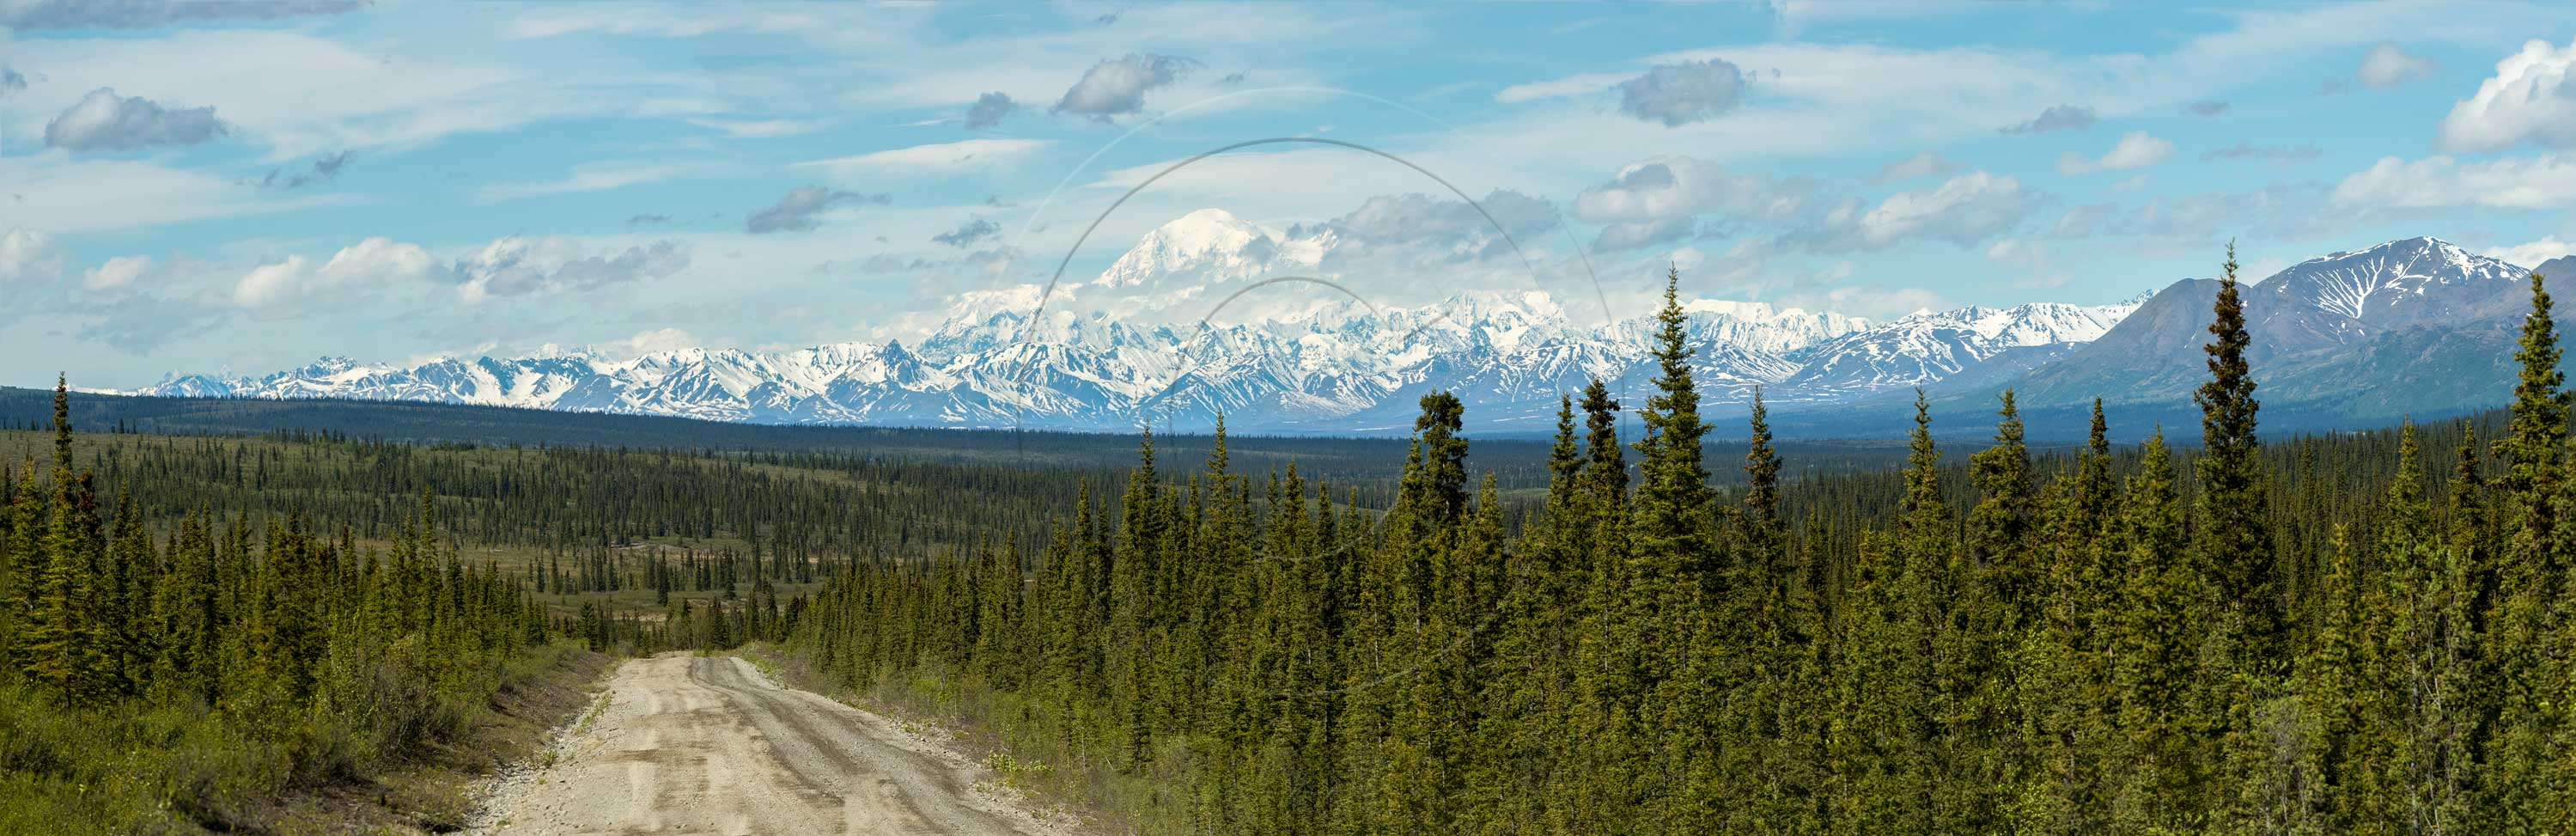 Denali Highway Panorama 3 (1 of 1)